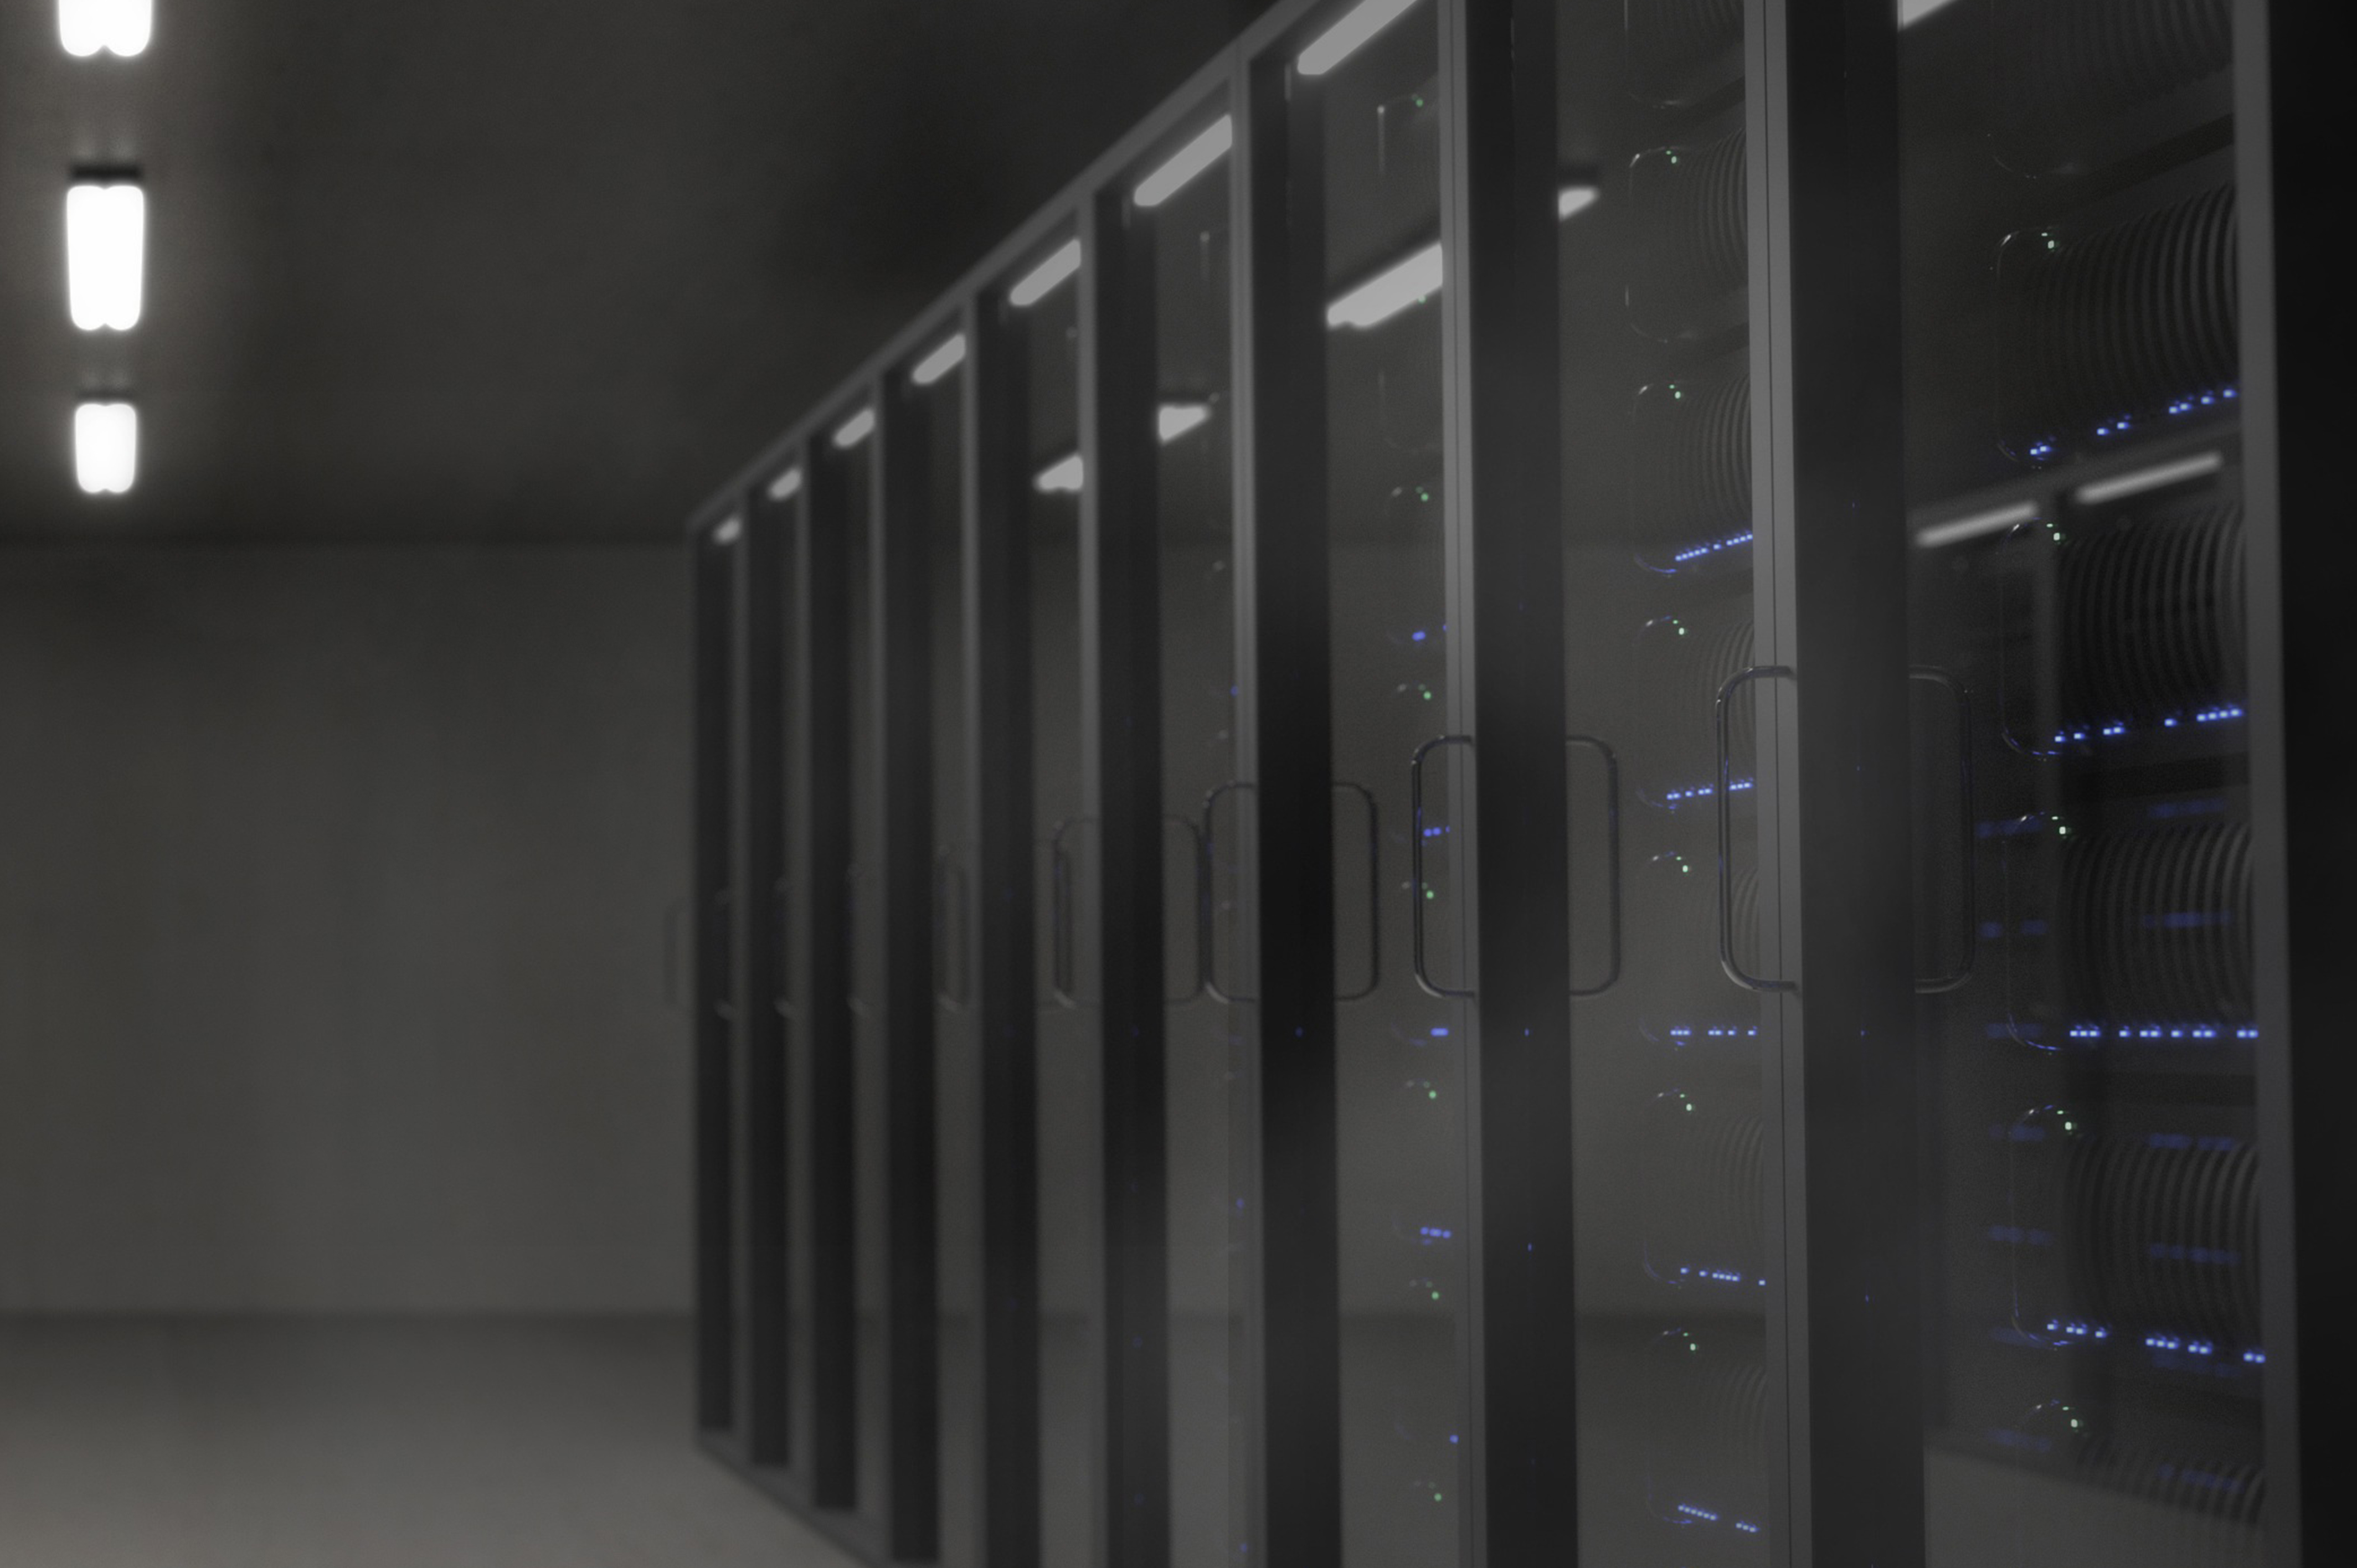 Servers at End of Life – An Opportunity for Growth